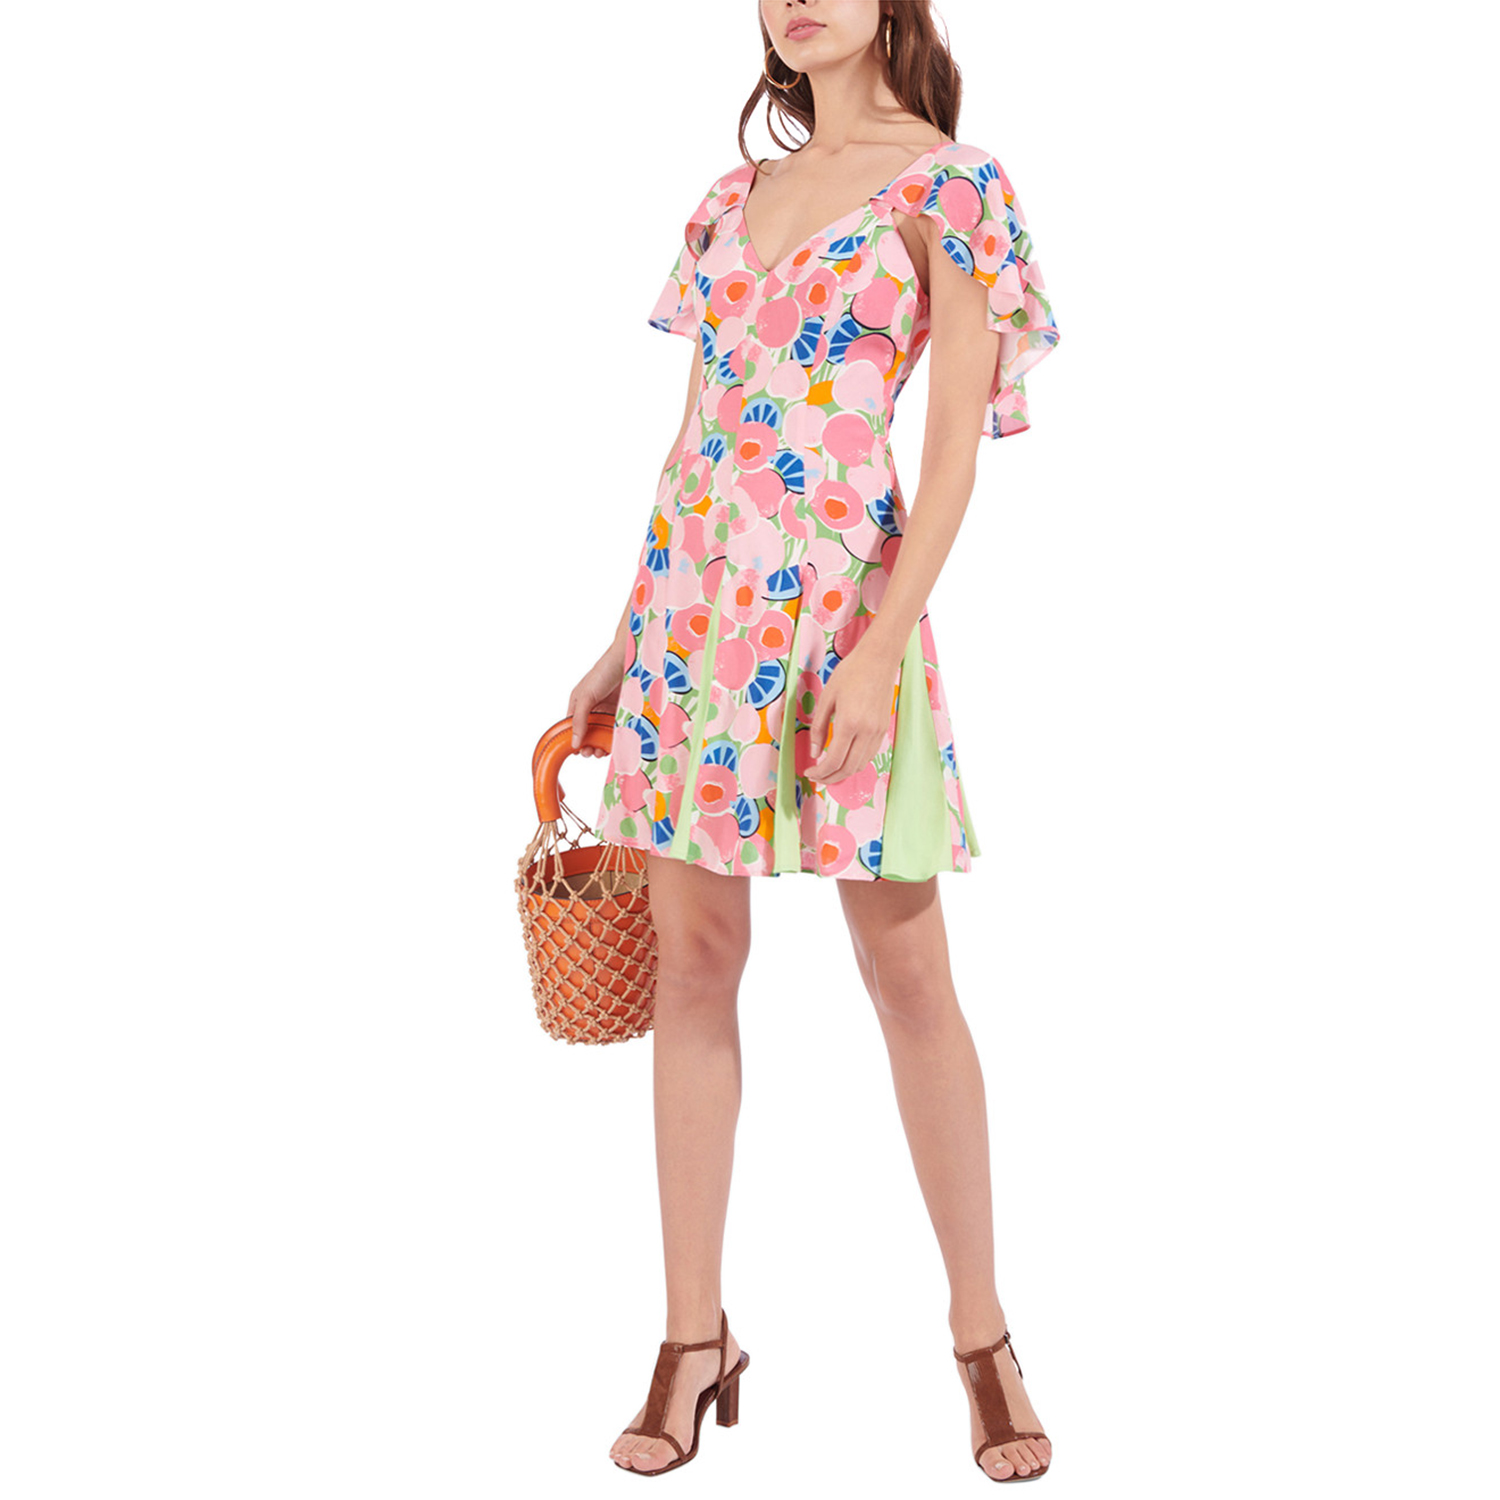 STAUD Chiquita Dress